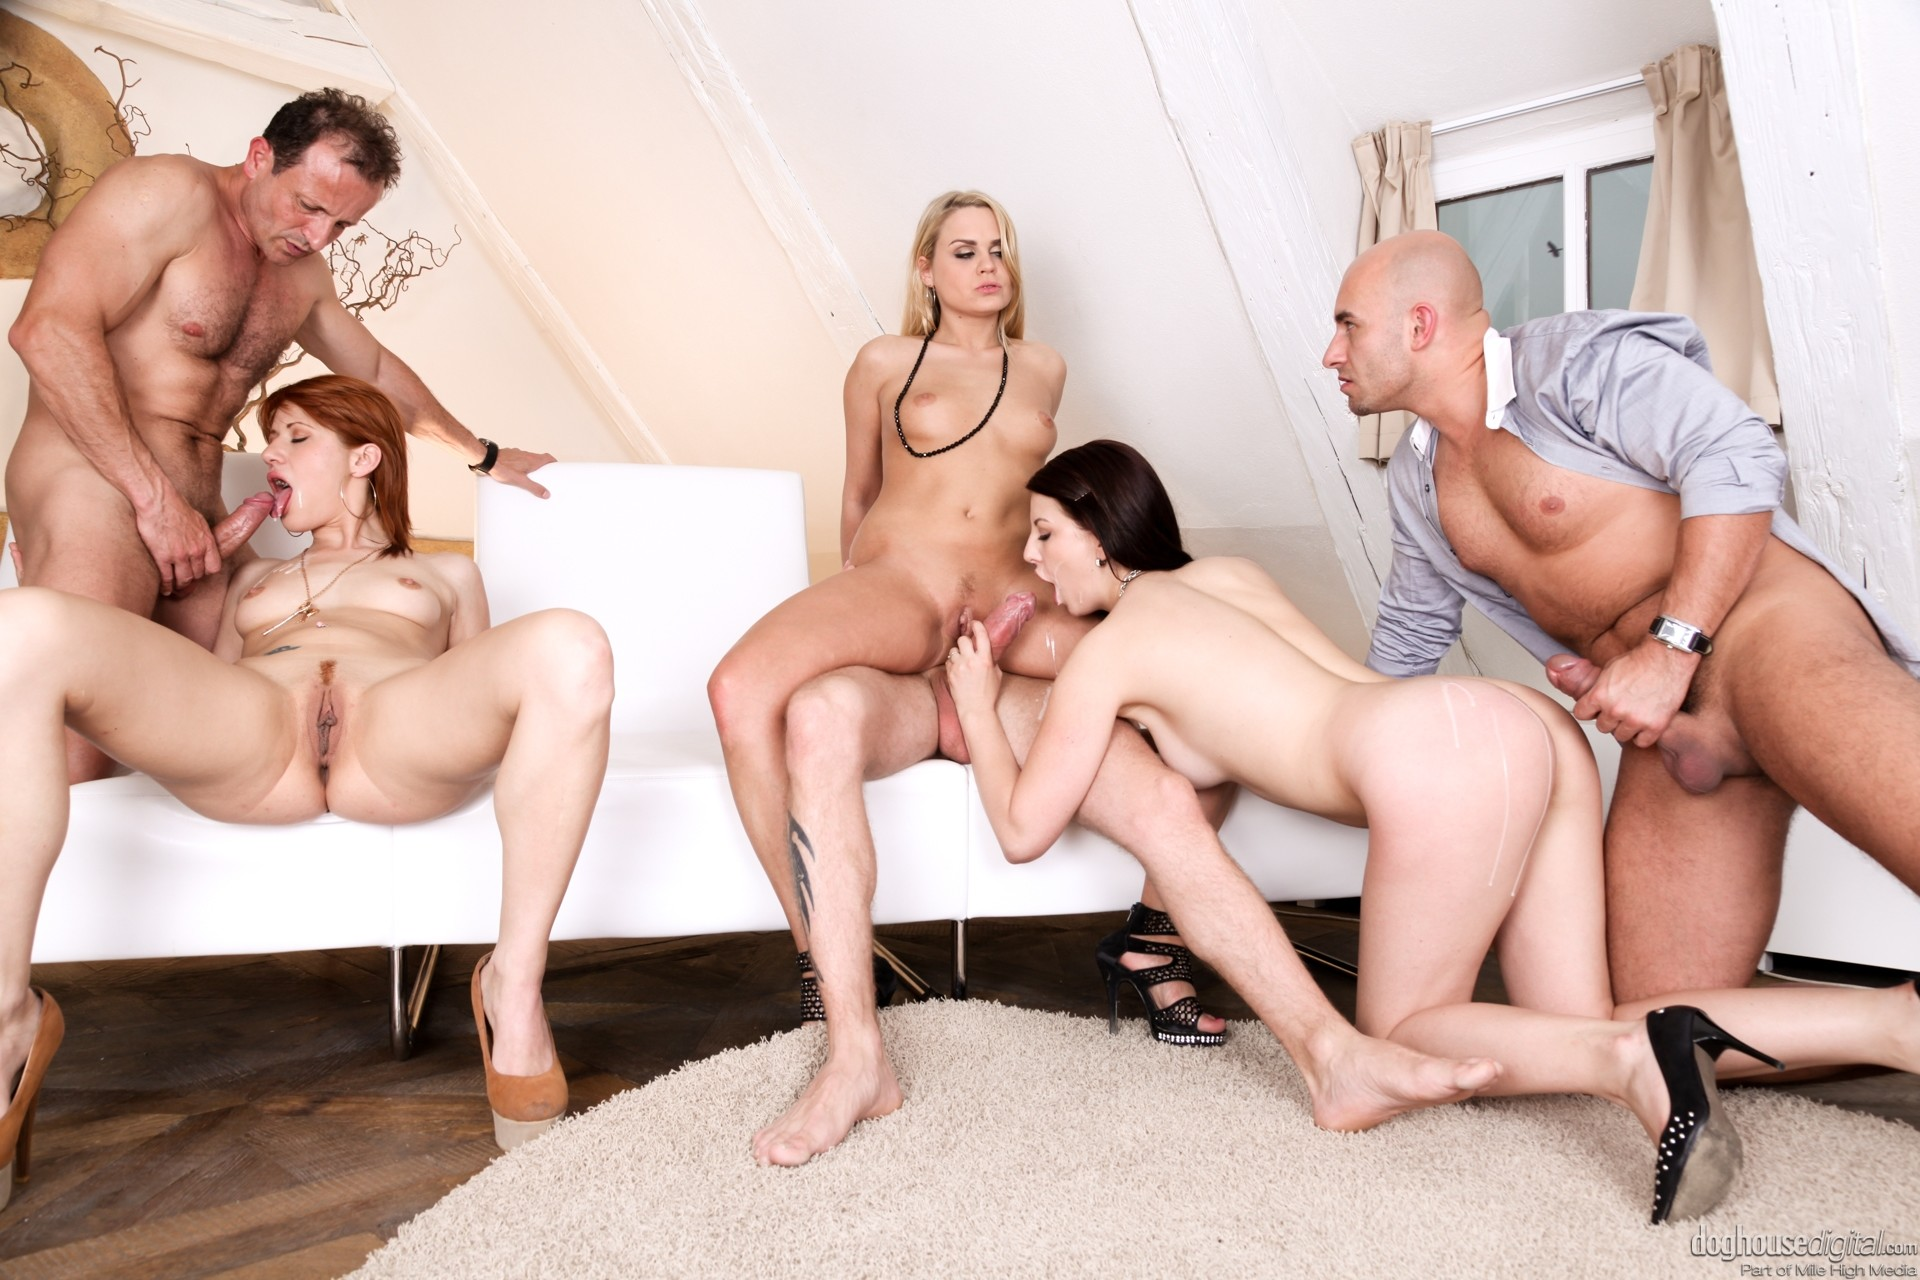 Group porn sex story